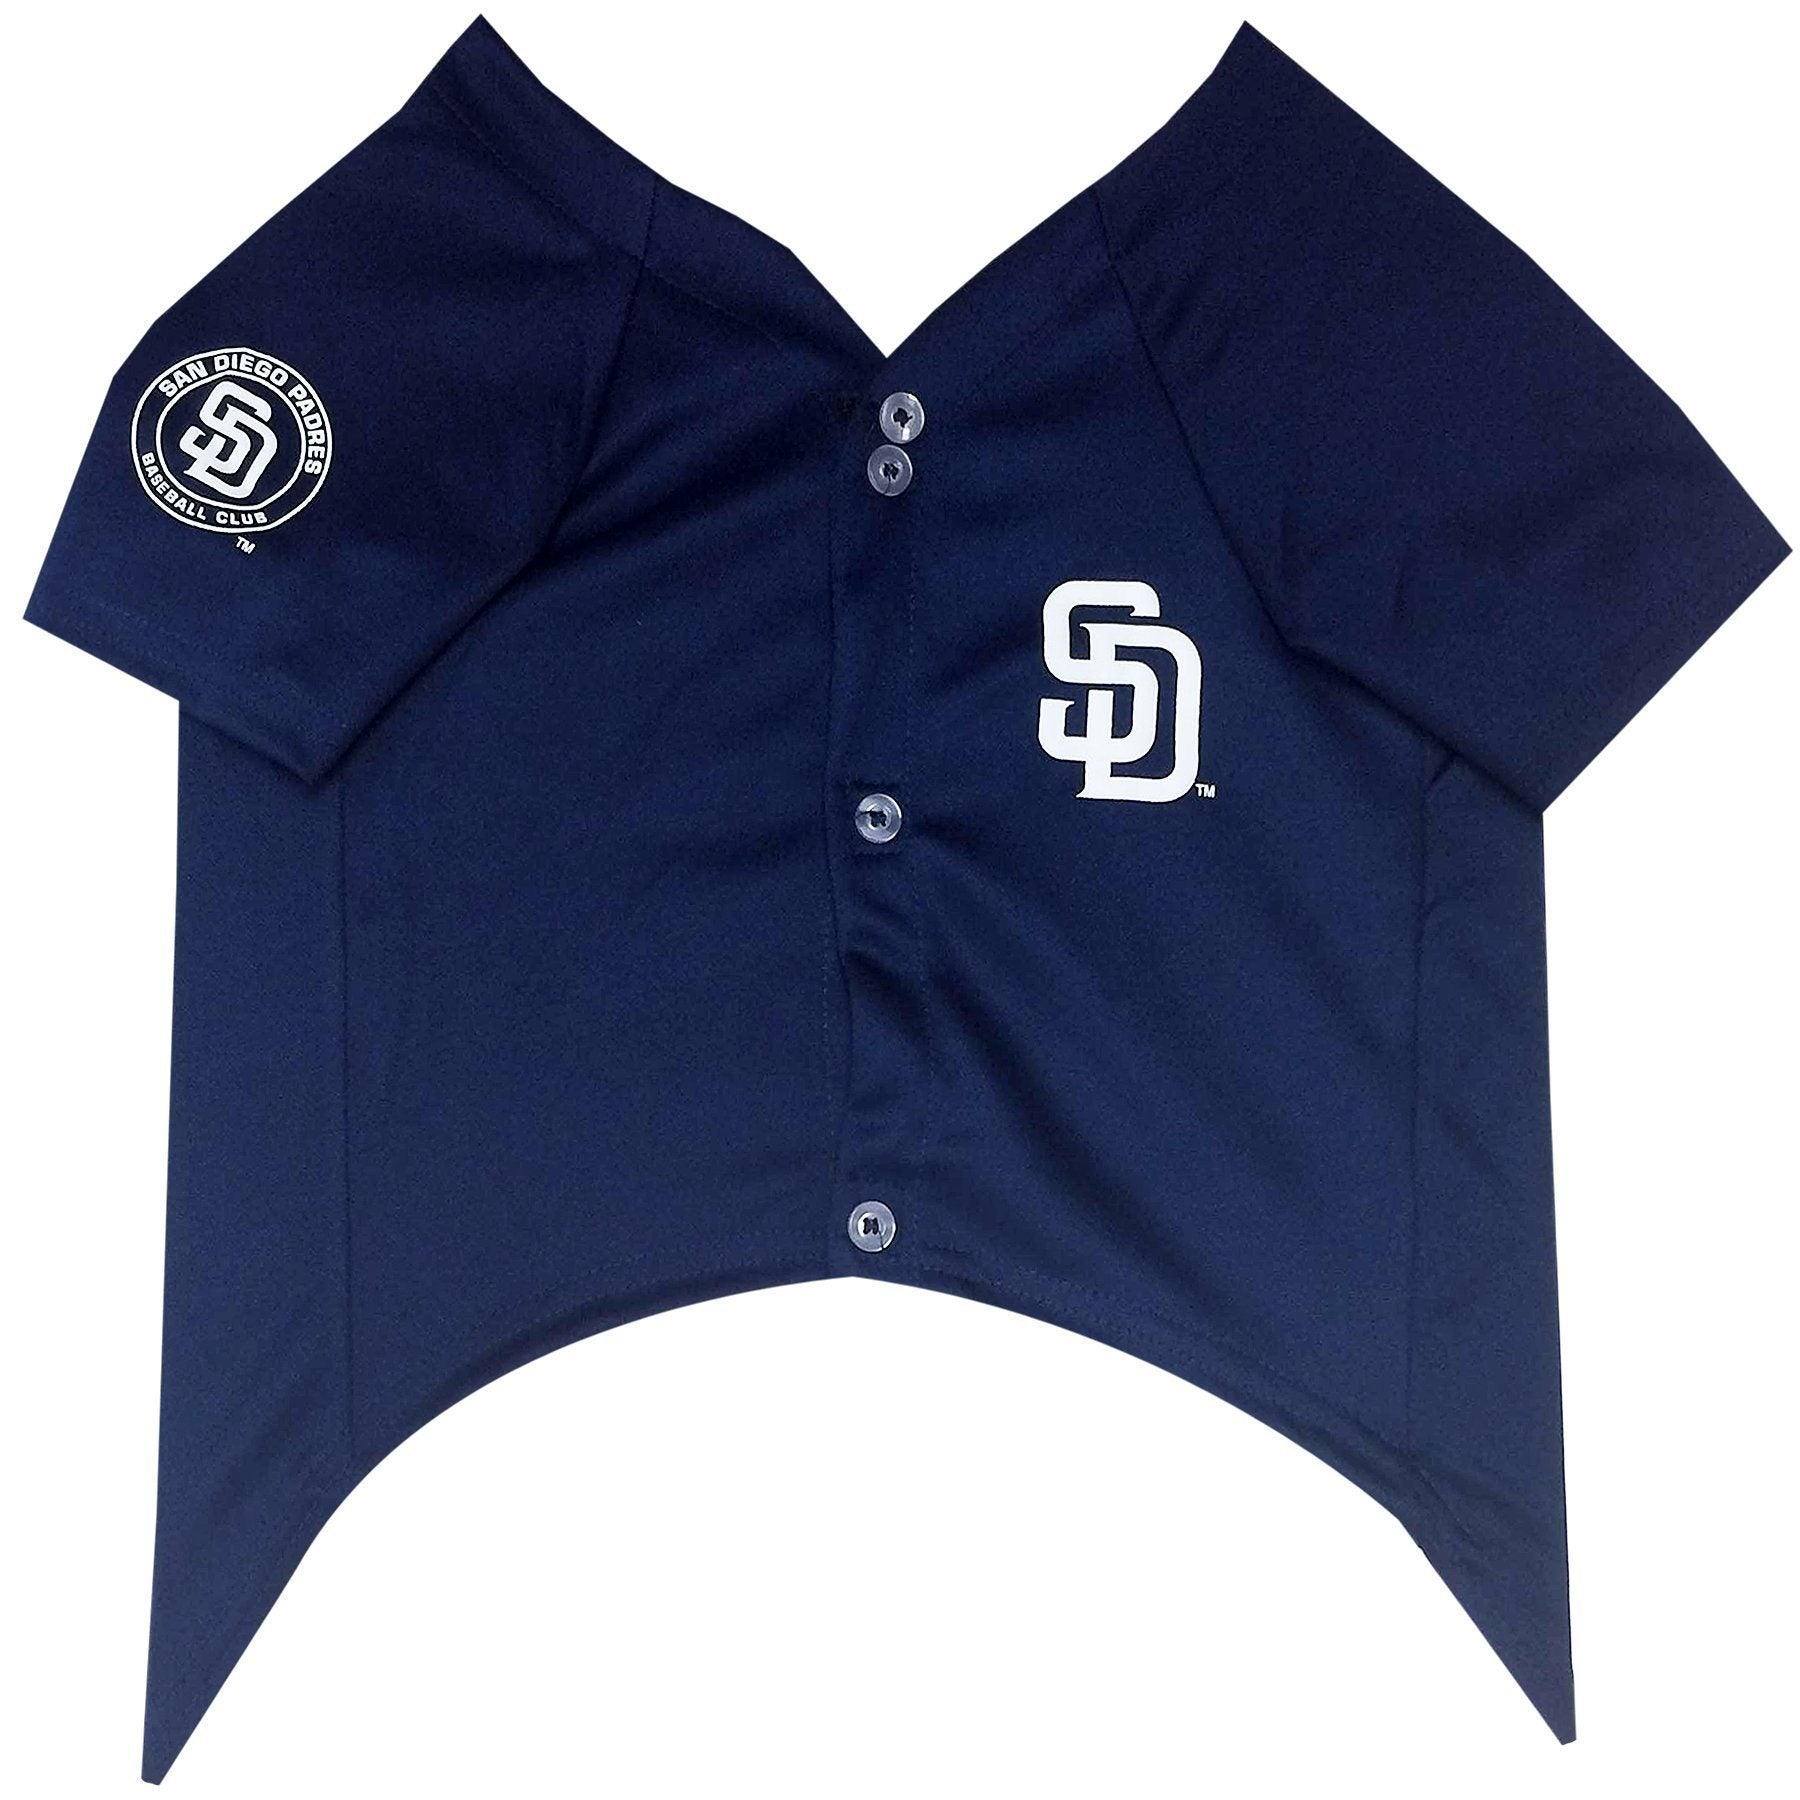 San Diego Padres Puppy Dog Baseball Jersey - Jersey Champs - Custom Basketball, Baseball, Football & Hockey Jerseys